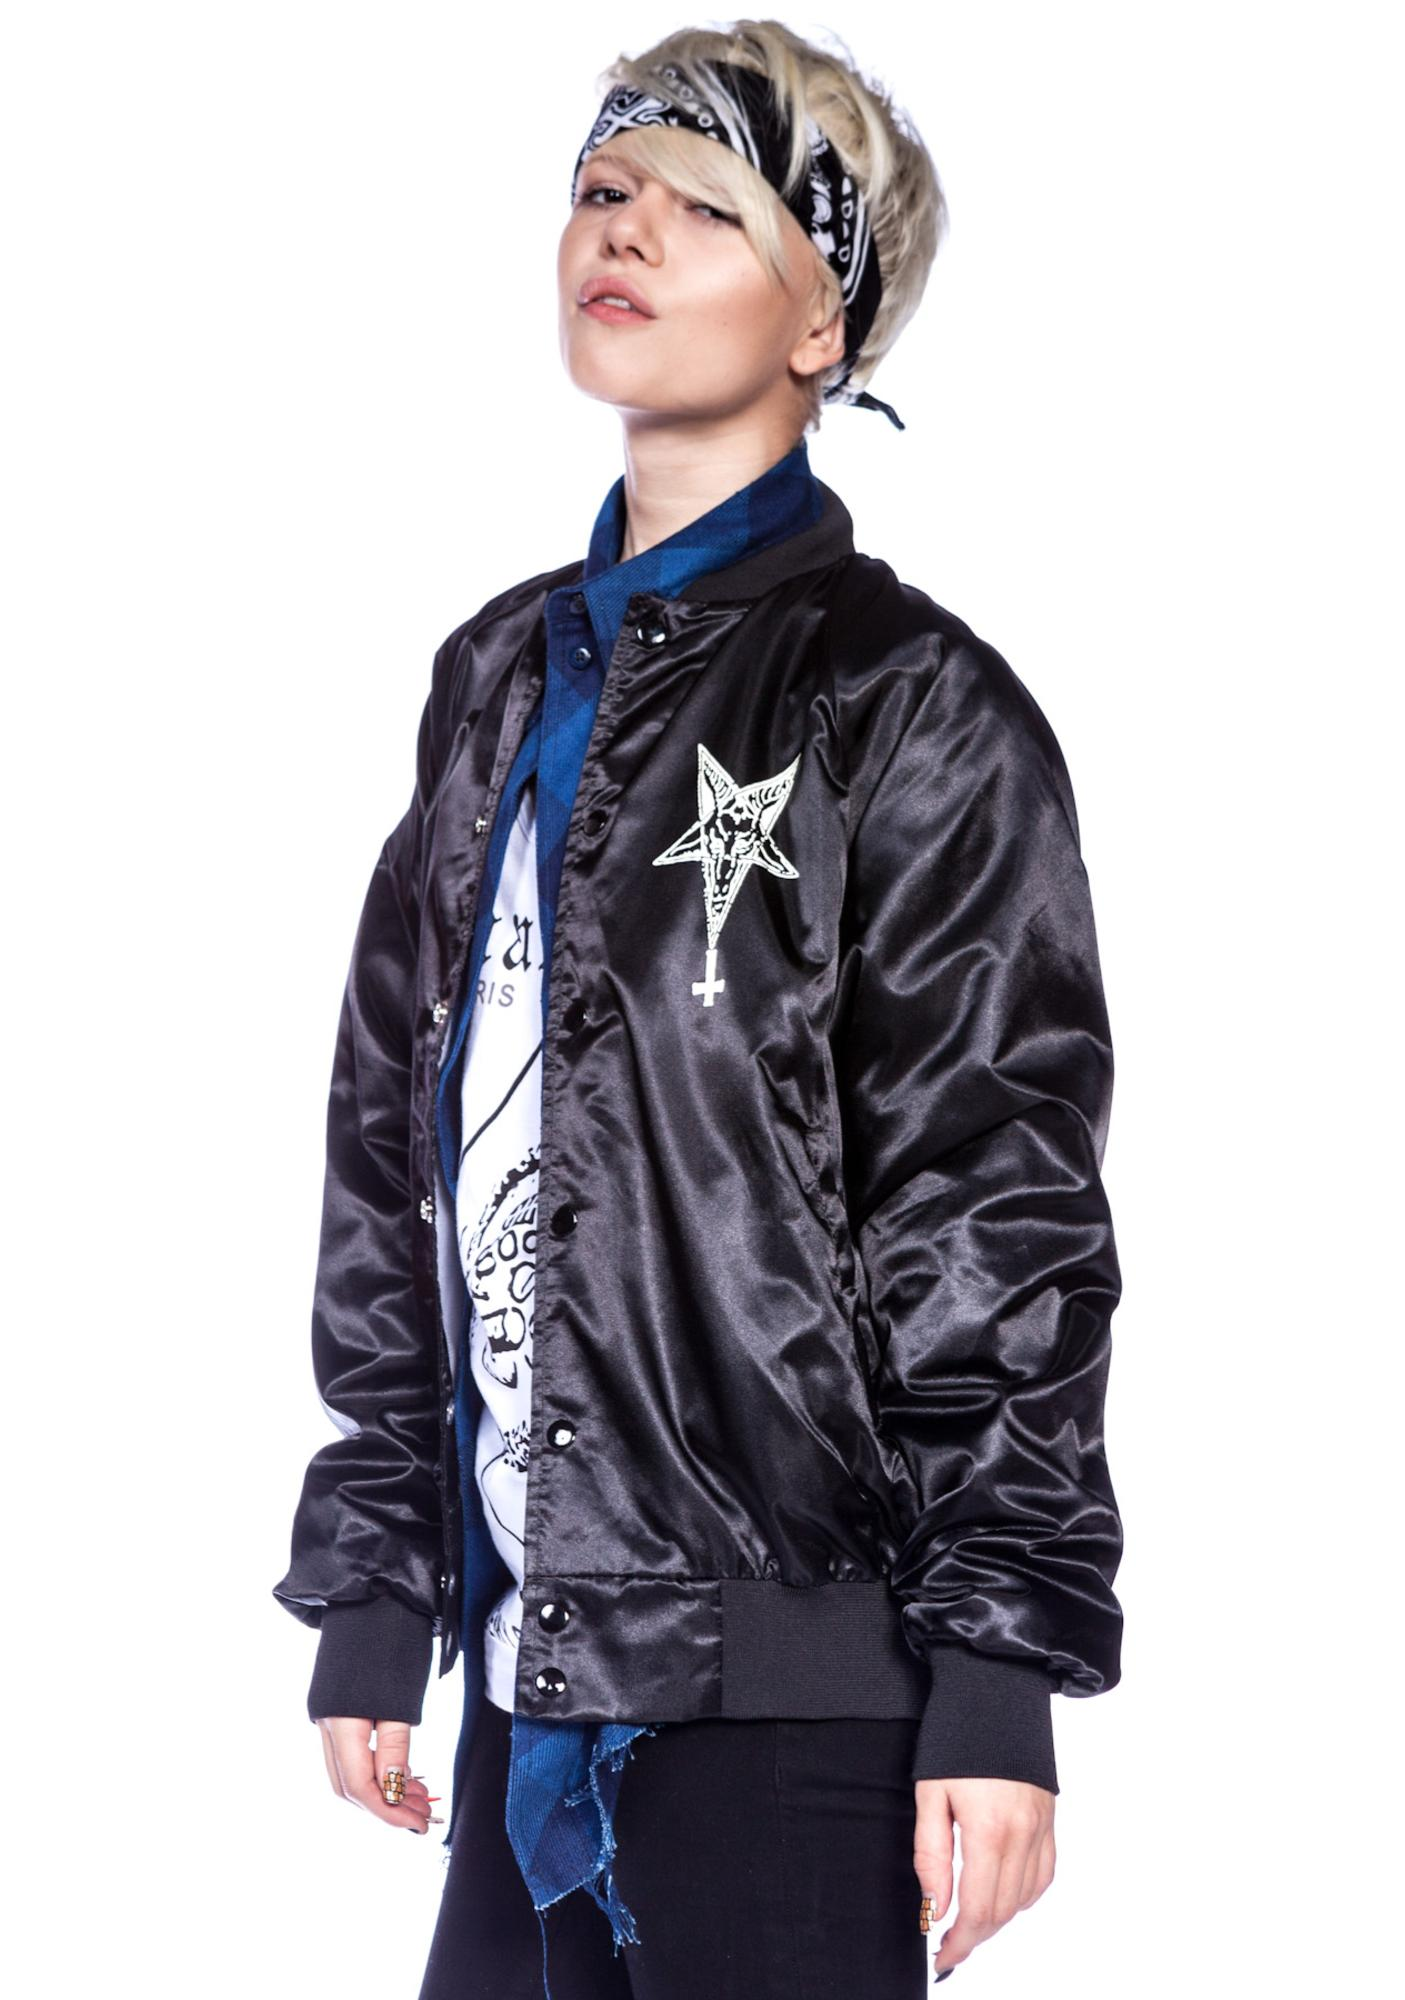 We Don't Die Nylon Snap Jacket